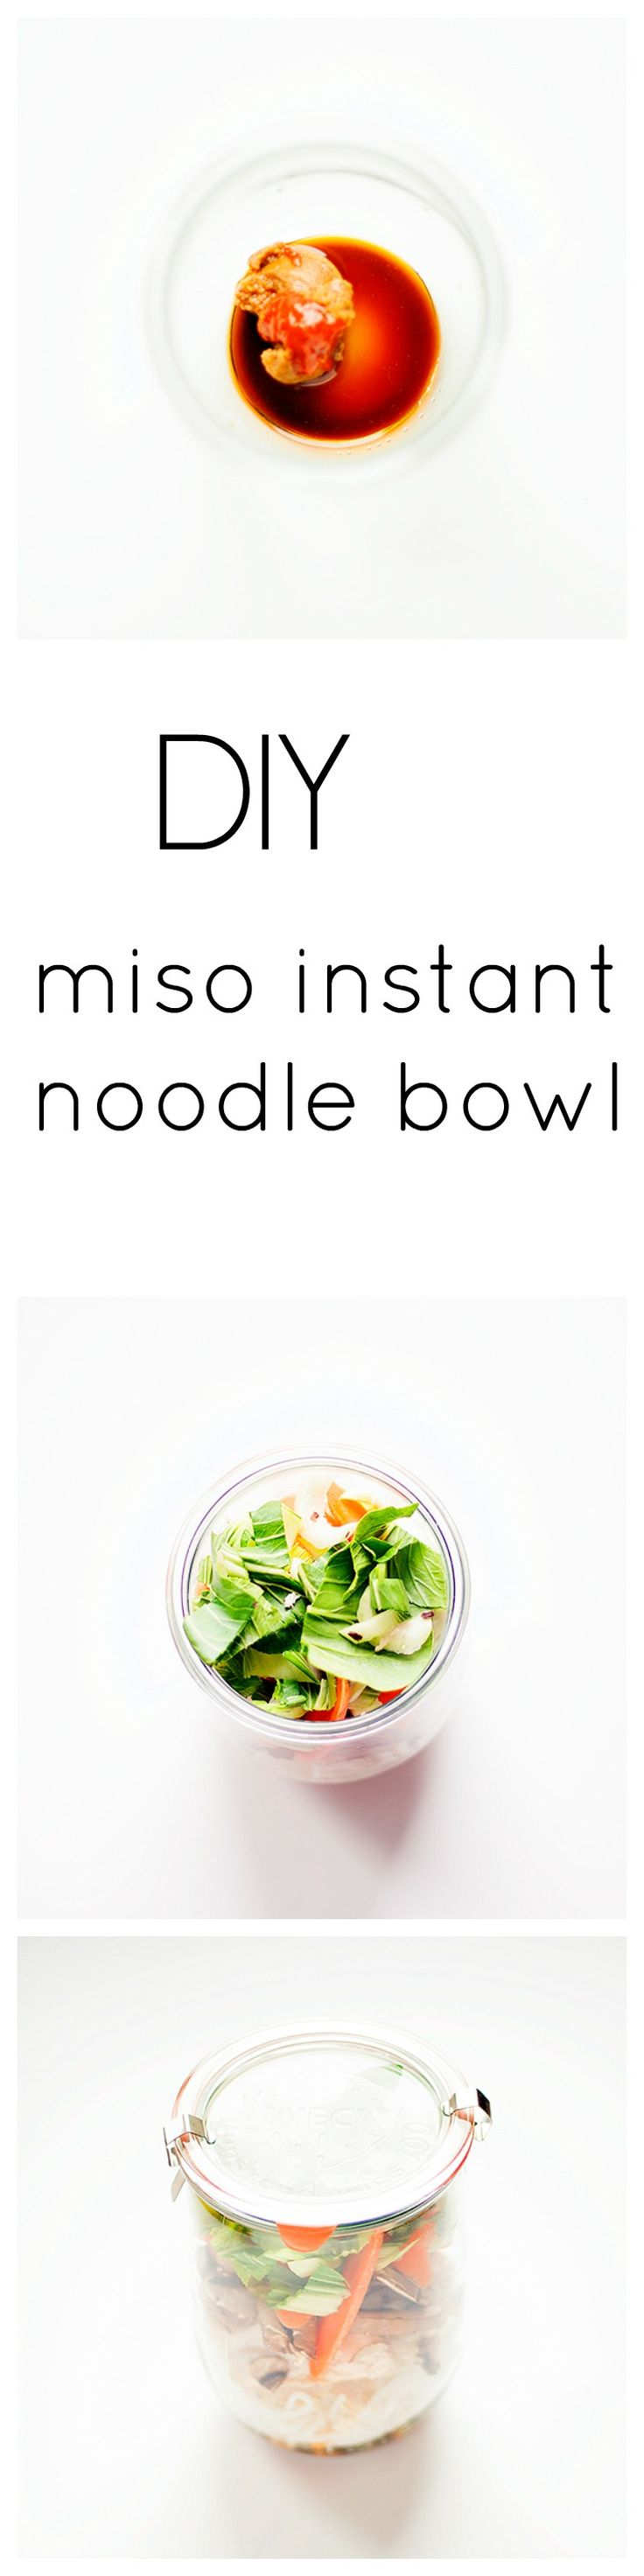 DIY instant miso noodle bowl | heathersfrenchpress.com #miso